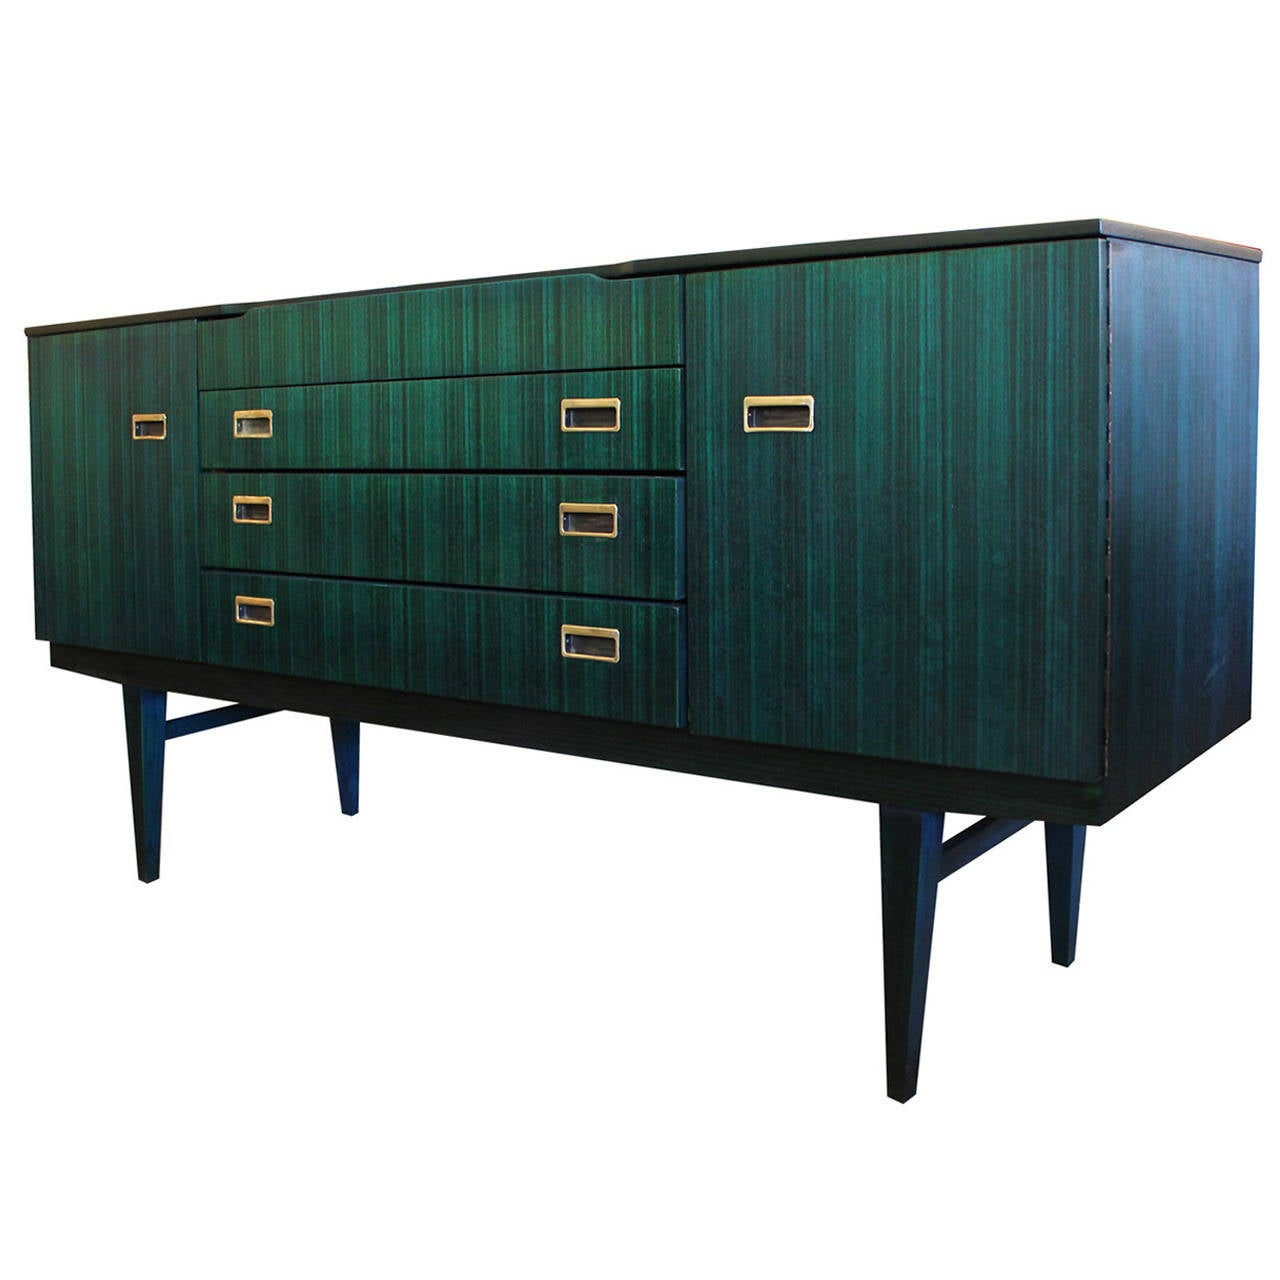 Luxe Teal Dyed Sideboard with Brass Handles at 1stdibs